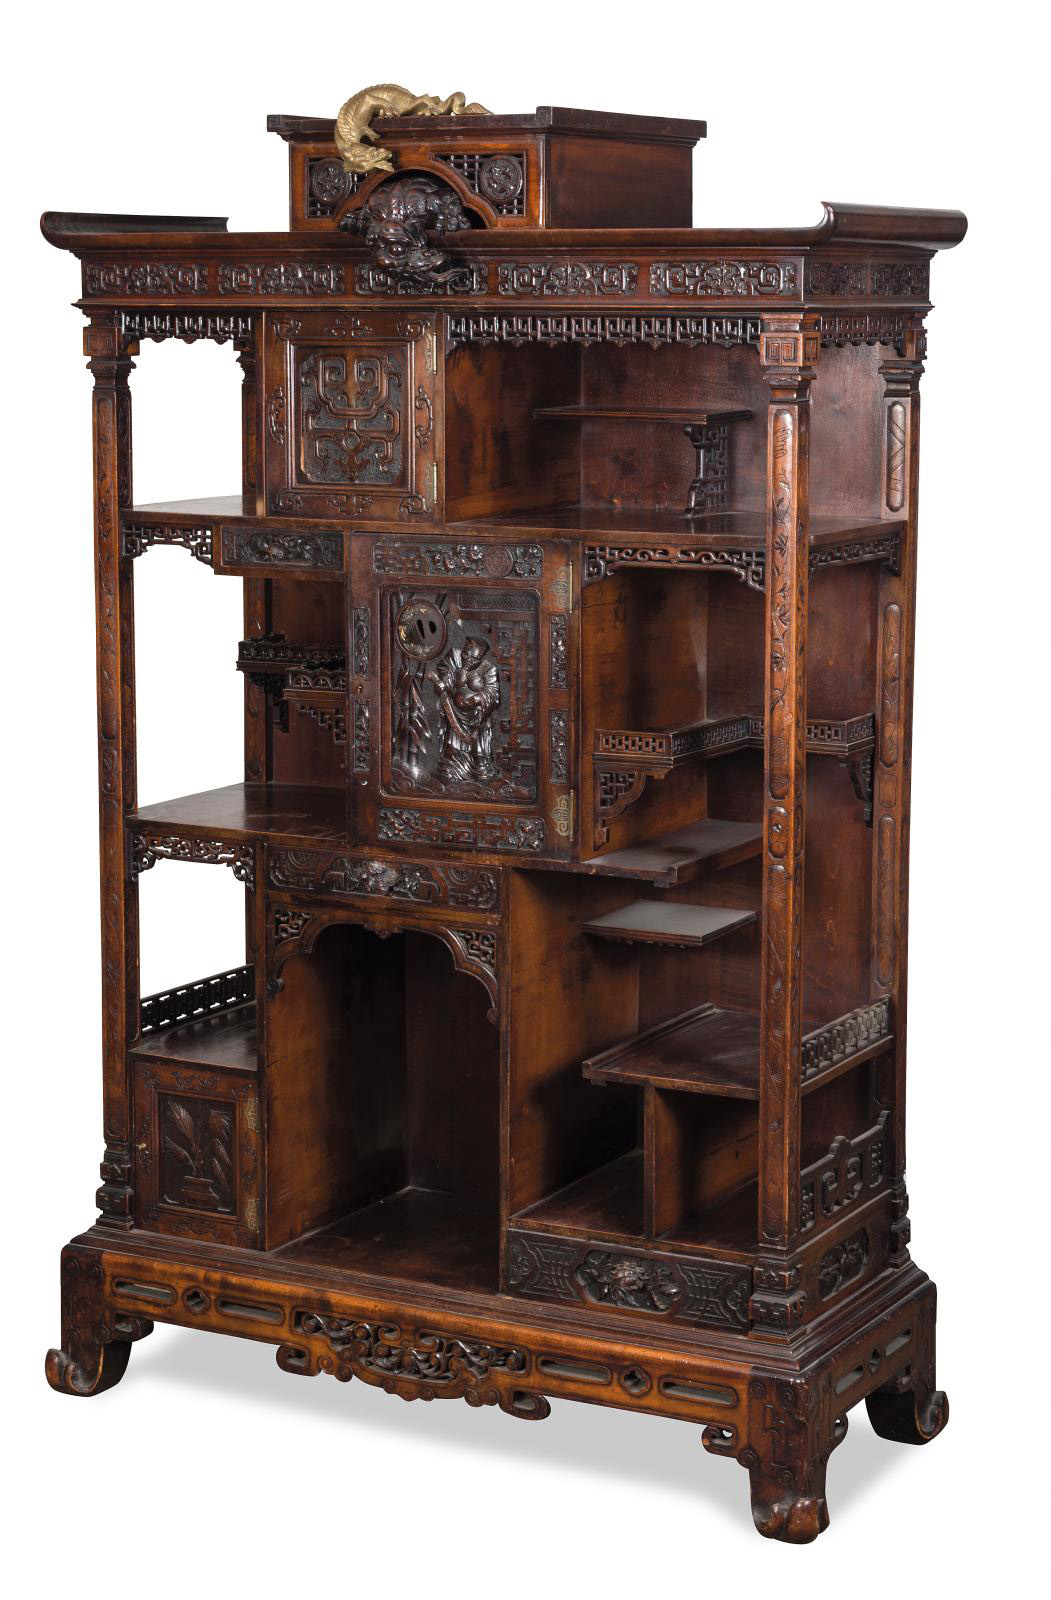 Carved, molded and patinated showcase cabinet in wood with two doors, one containing an openwork tsuba, and three drawers, Far-Eastern decoration of warriors, flowers, plants and openwork foliage, sides with unstructured shelves, a lively style base, pagoda cornice surmounted by two flying dragons, signed, 175 x 113 x 46 cm (68.9 x 44.5 x 18 in). Estimate: €1,000/1,500